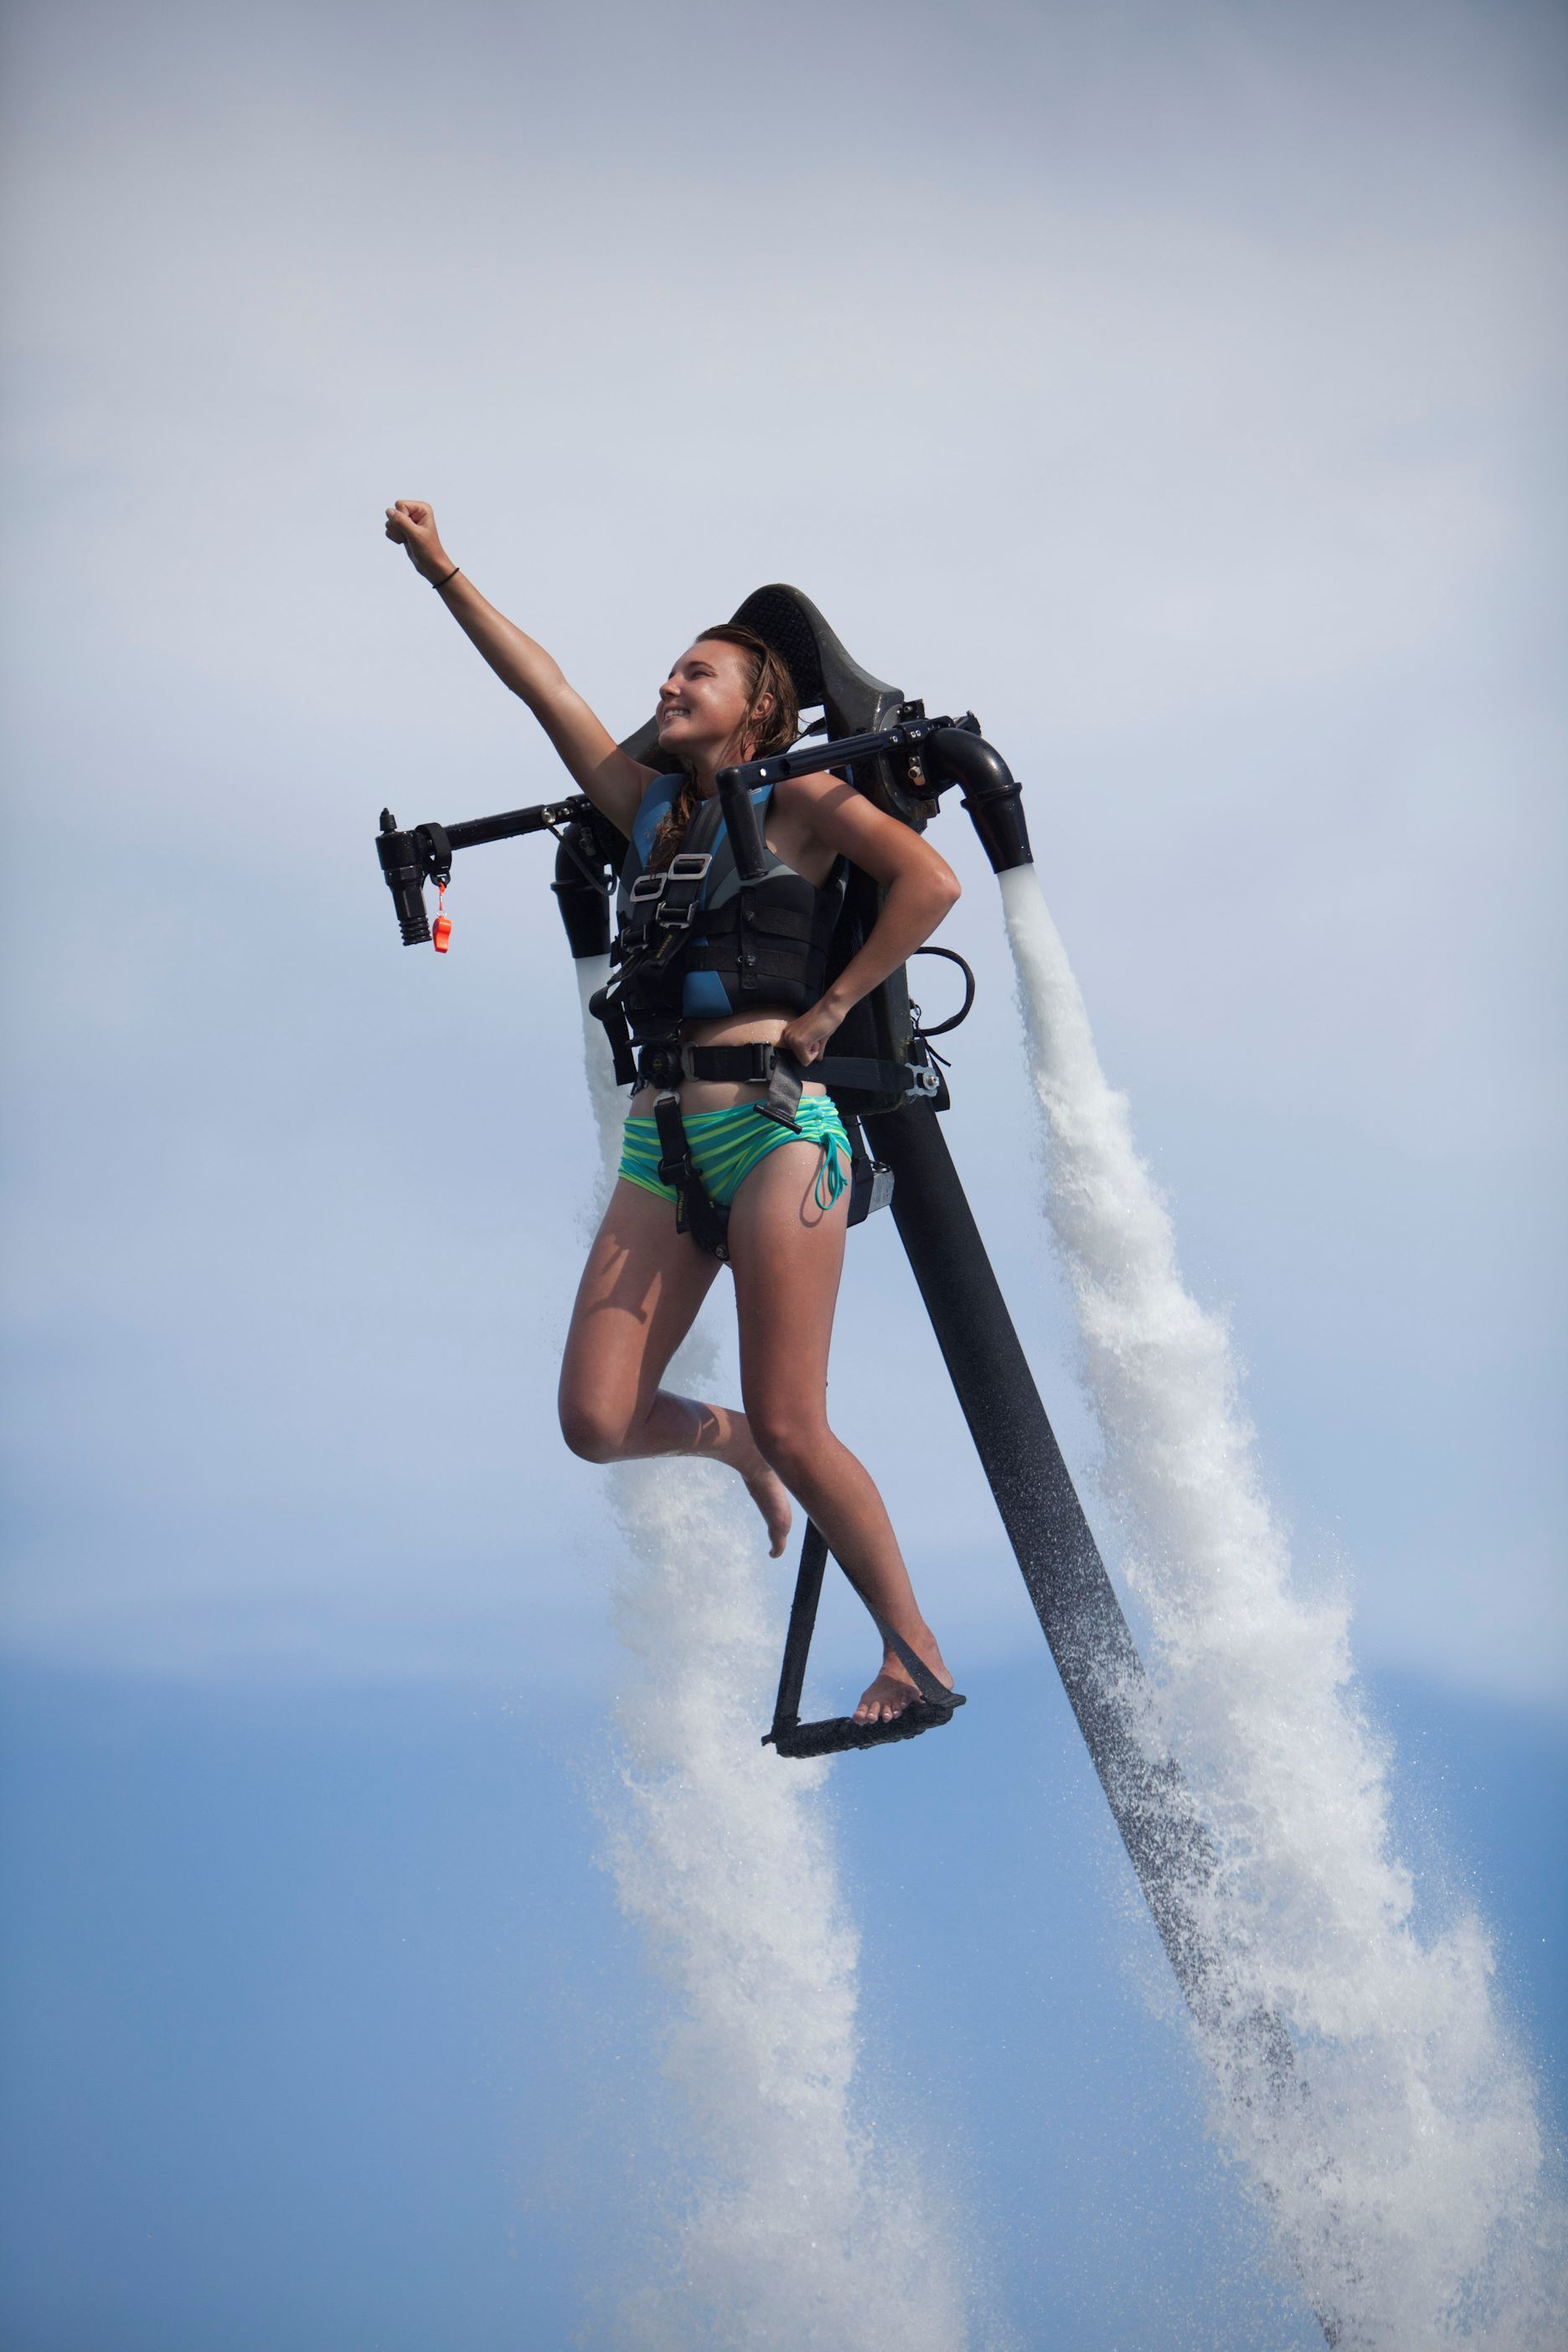 The Jetlev R200x Water Jetpack Also Available In Aruba Beach Close Outdoor Recreation Water Activities